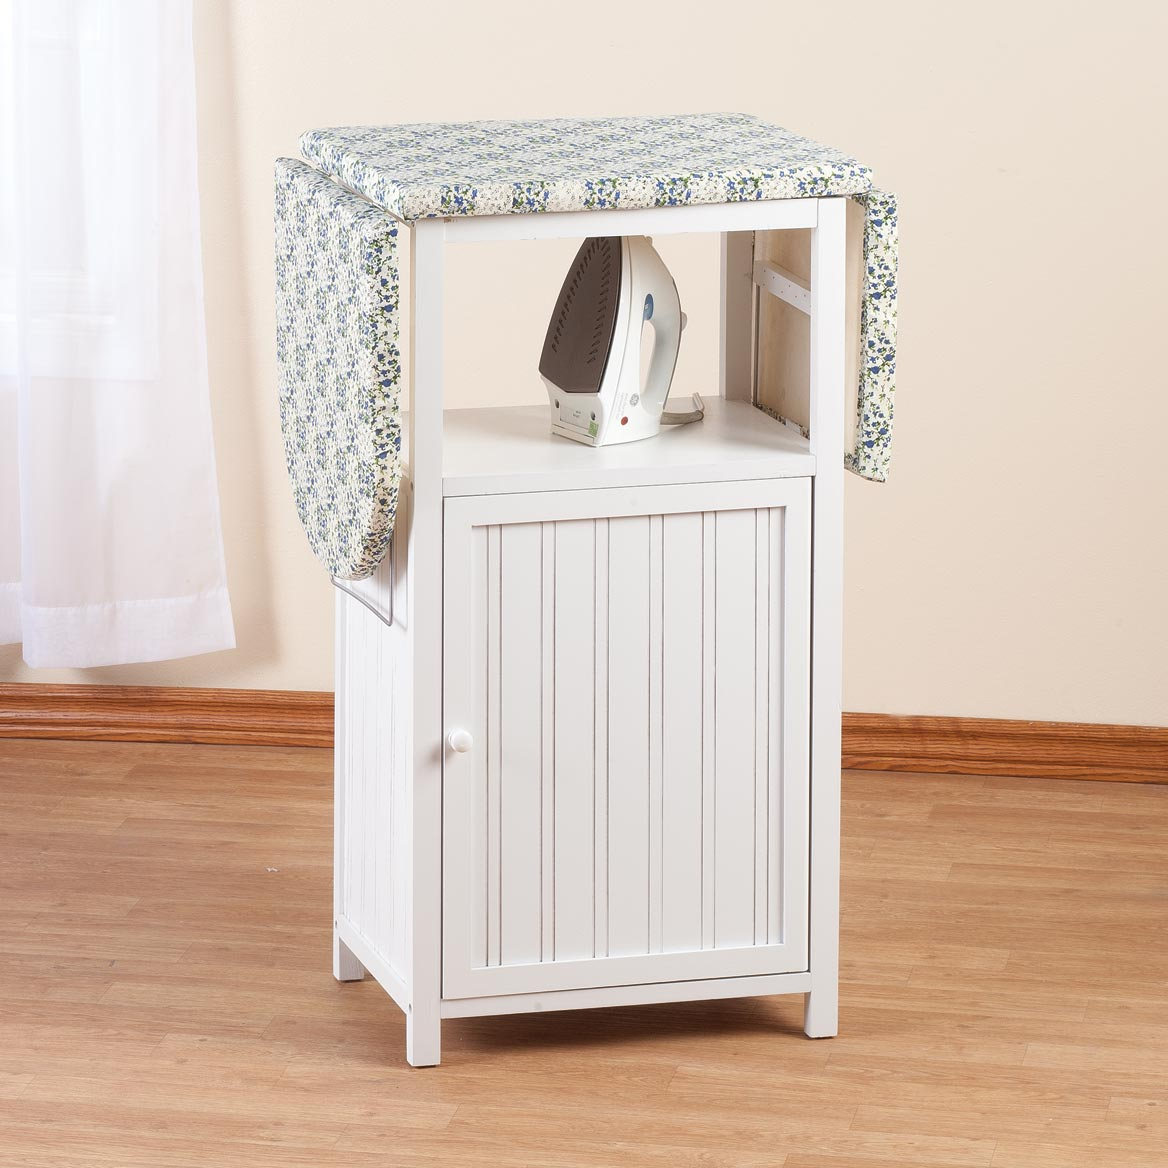 Deluxe Ironing Center by OakRidge™      XL-357556